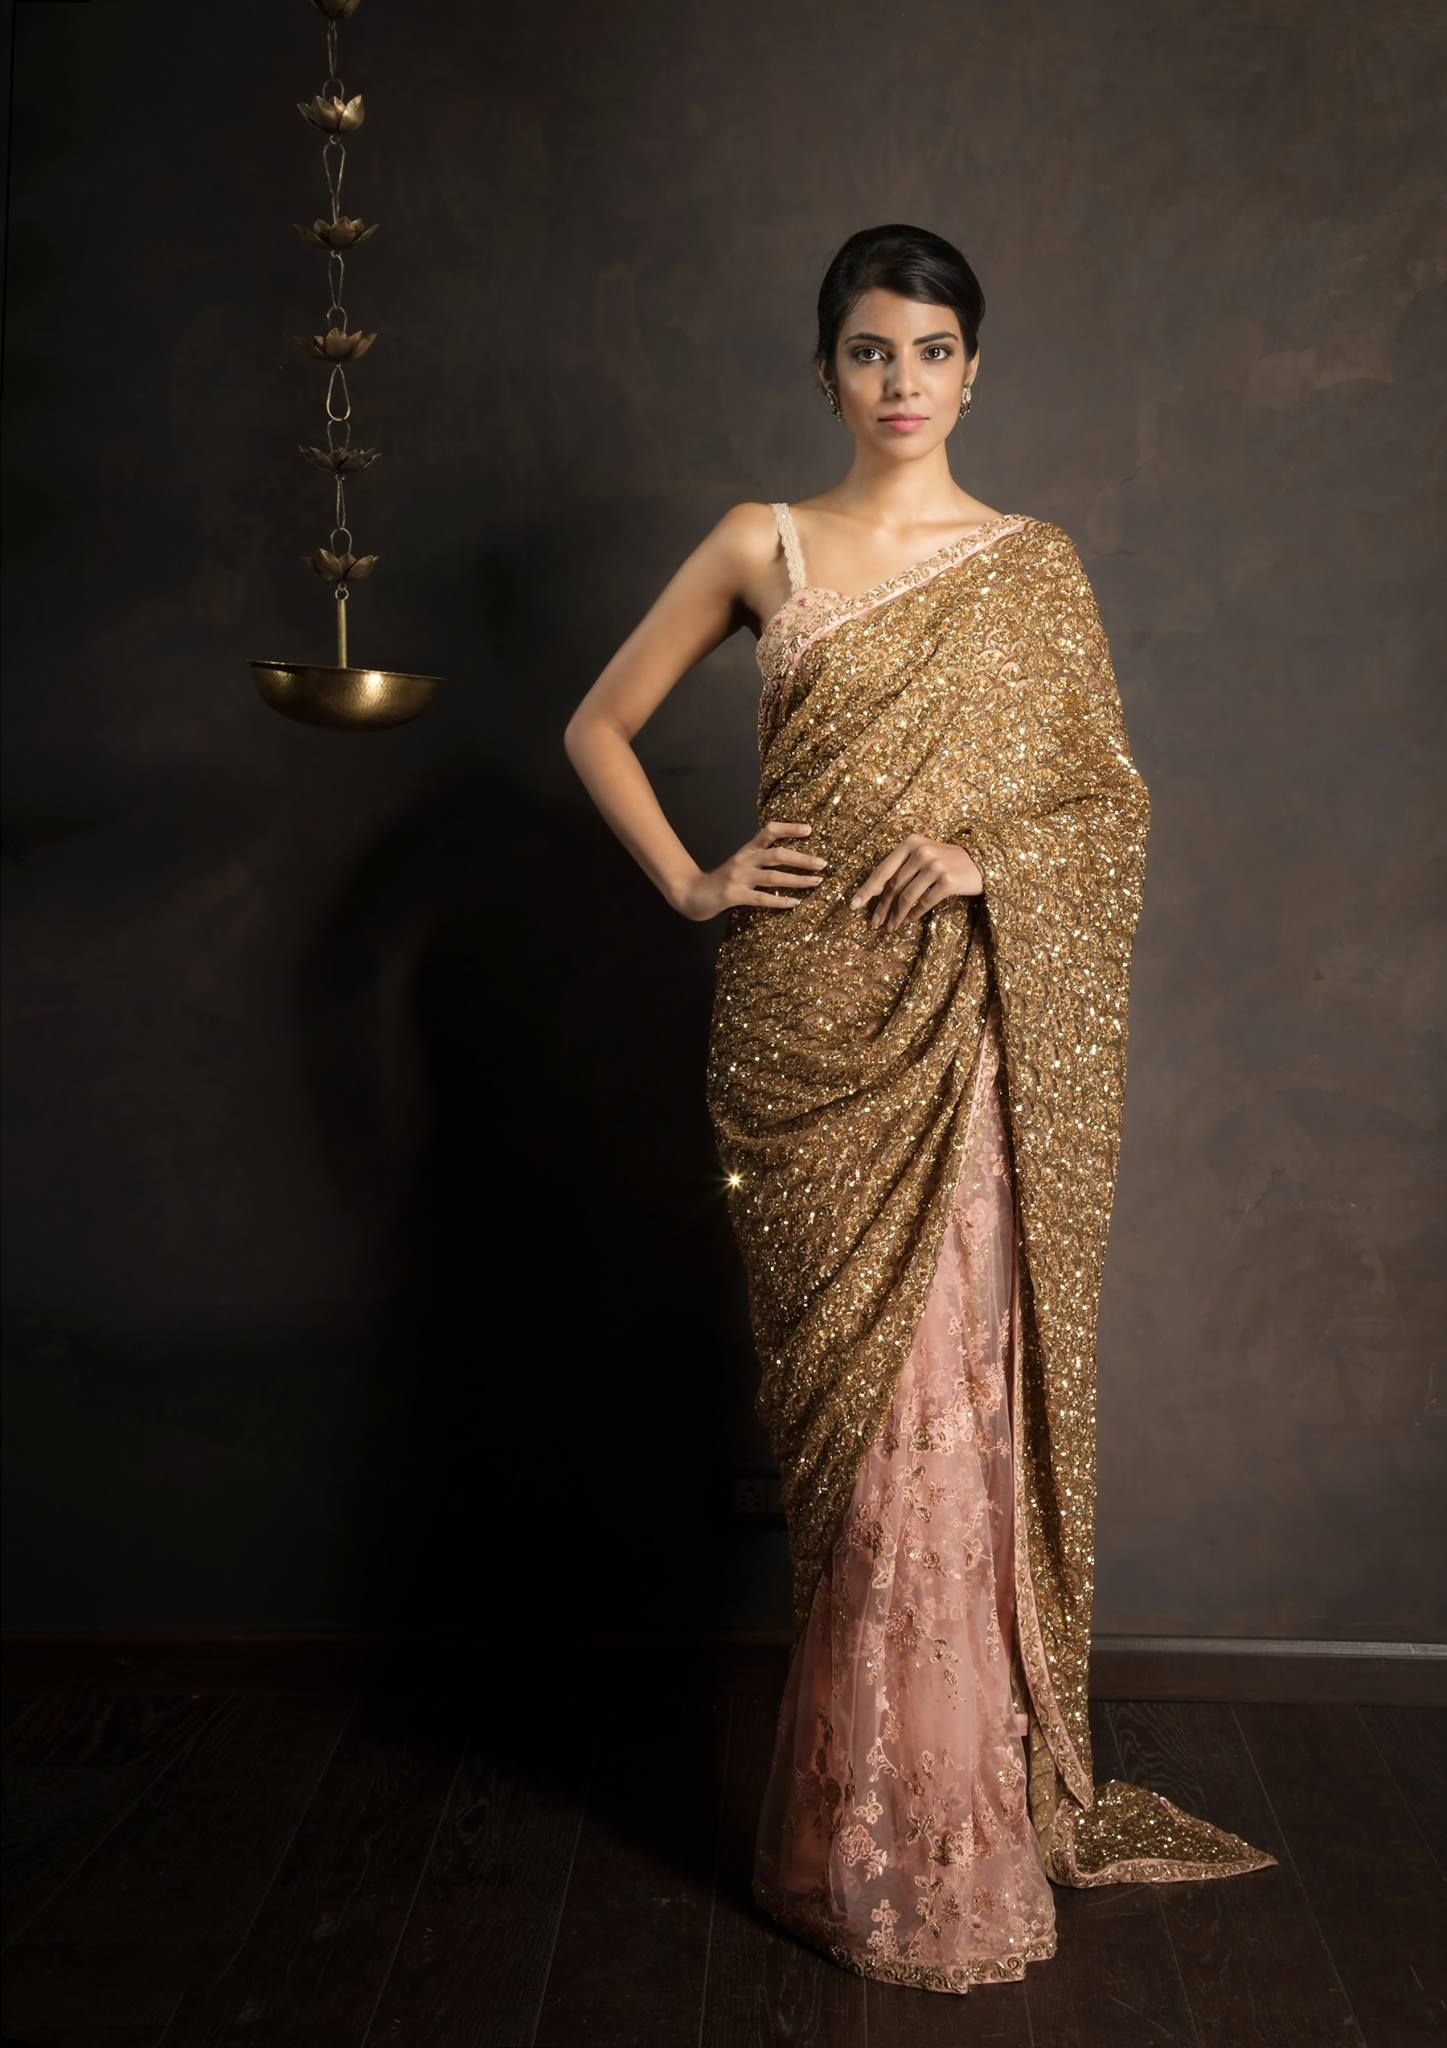 01ba59f707264 An exquisite tulle crystal rose saree hand embroidered with floral patterns  in resham and gold zardosi scallops. 11 December 2017